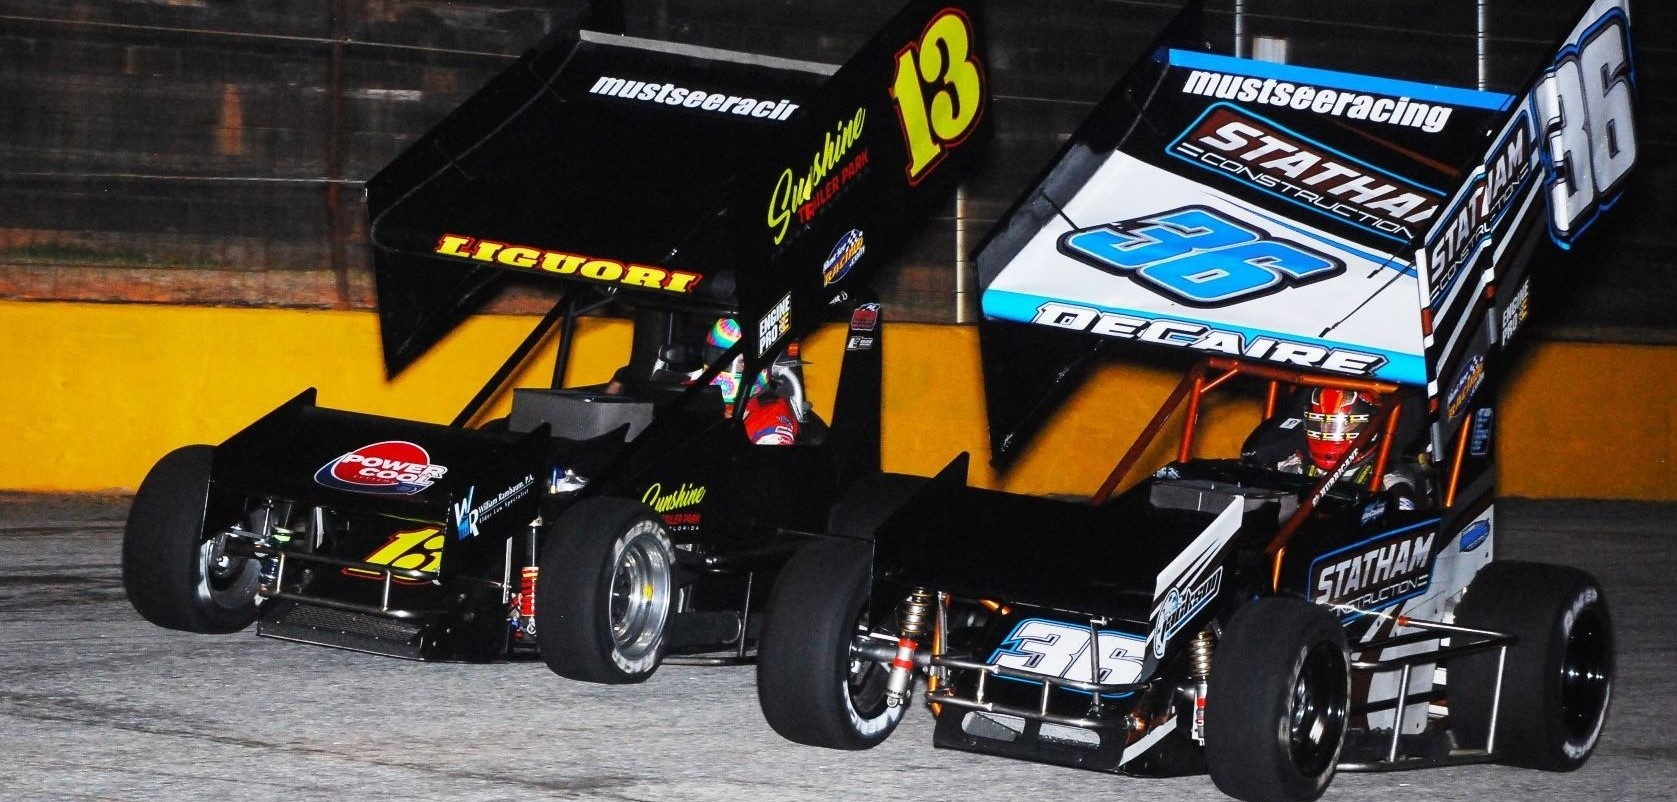 AMERICAN SPEED U.S. NATIONALS - WINGED SPRINTS, WINGED LIGHTS, WINGED SUPERMODIFIEDS, NATIONAL COMPACTS & ZOO STOCK